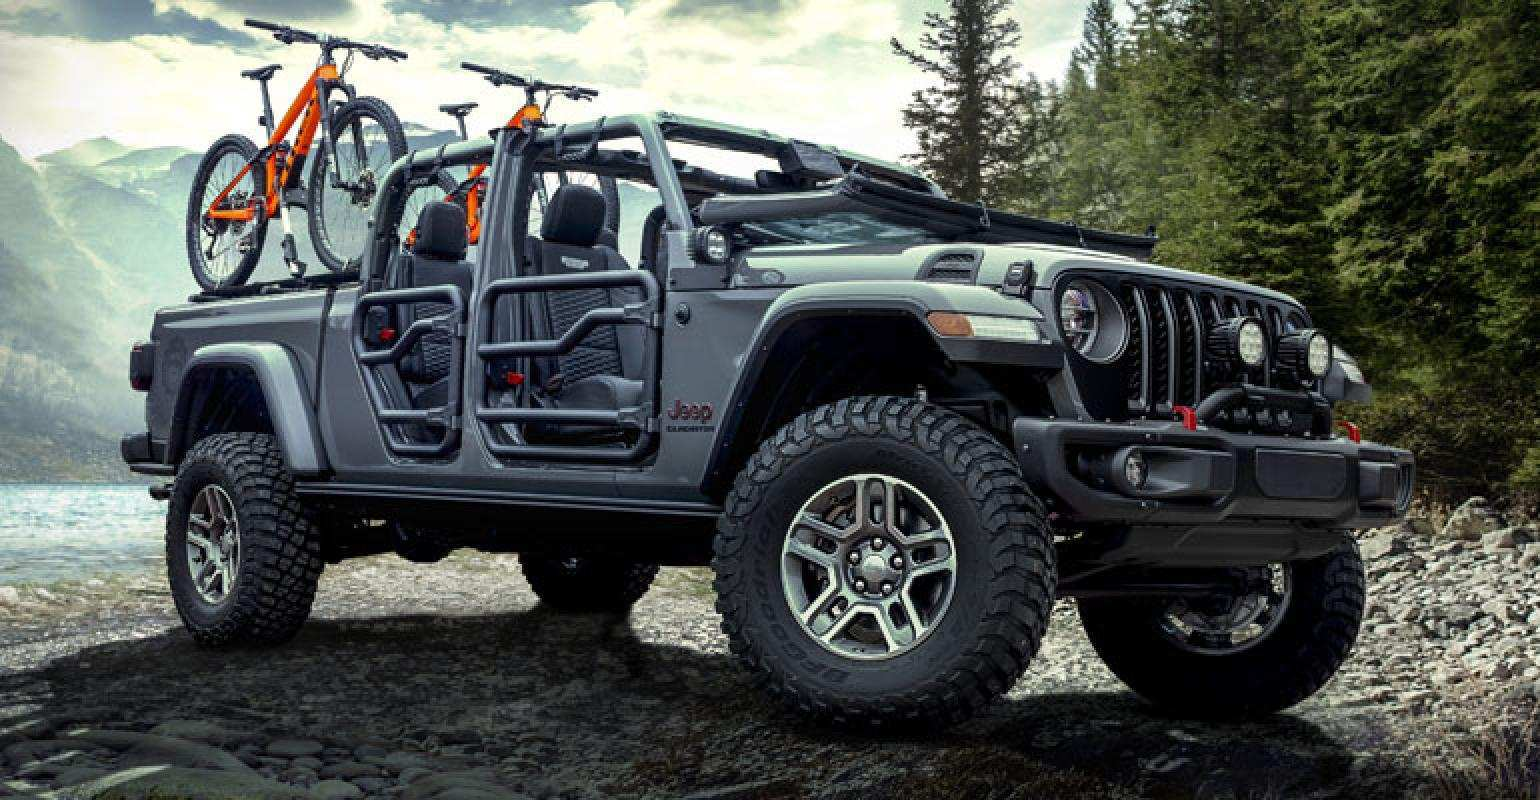 44 All New Jeep Gladiator Images 2020 Engine